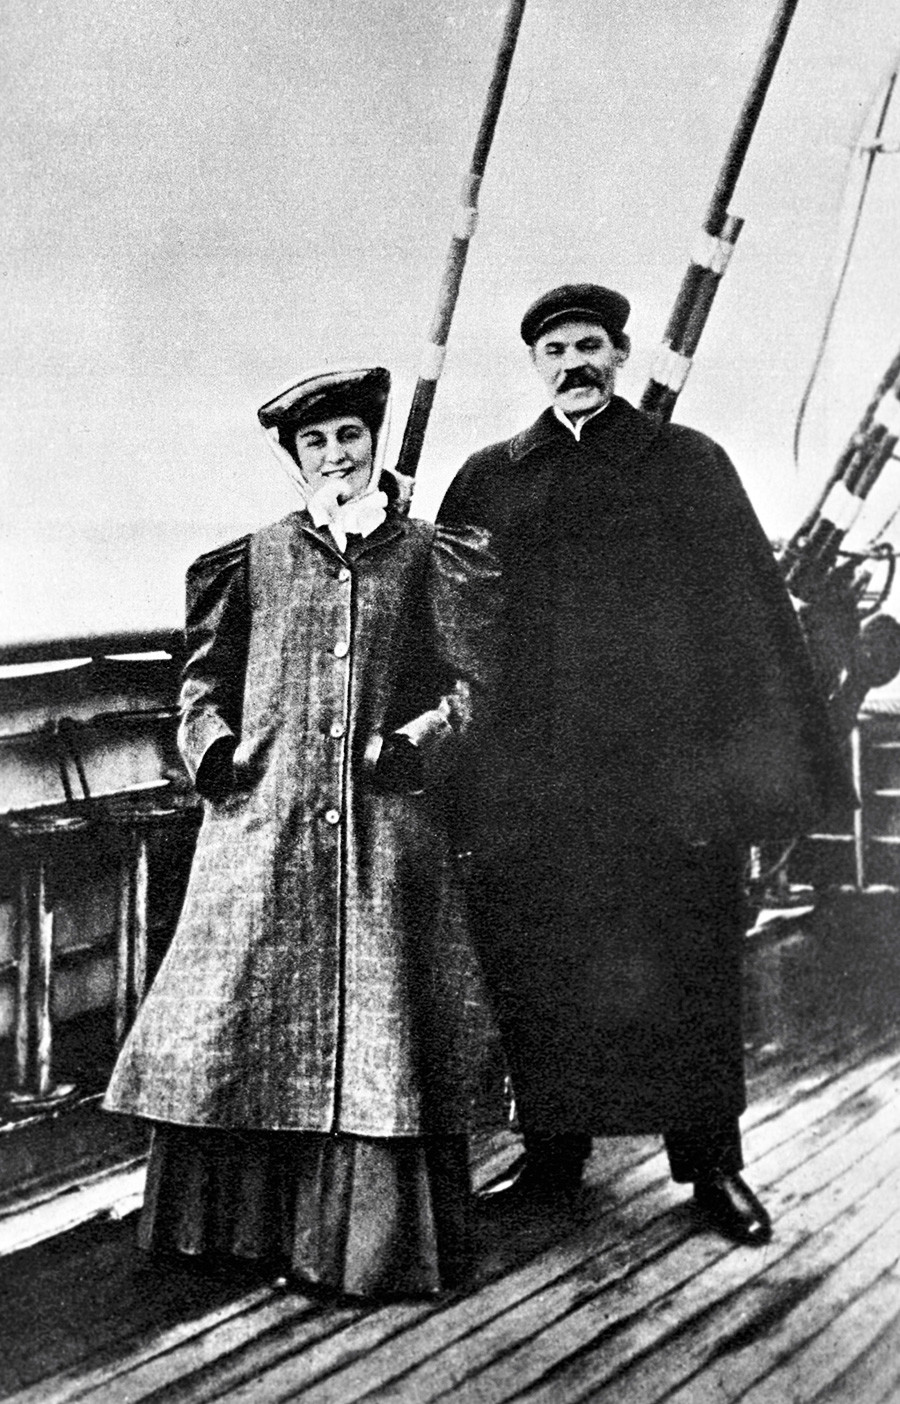 Maria Andreeva and Maxim Gorky on the deck of a steamboat en route to America. A screenshot from the documentary